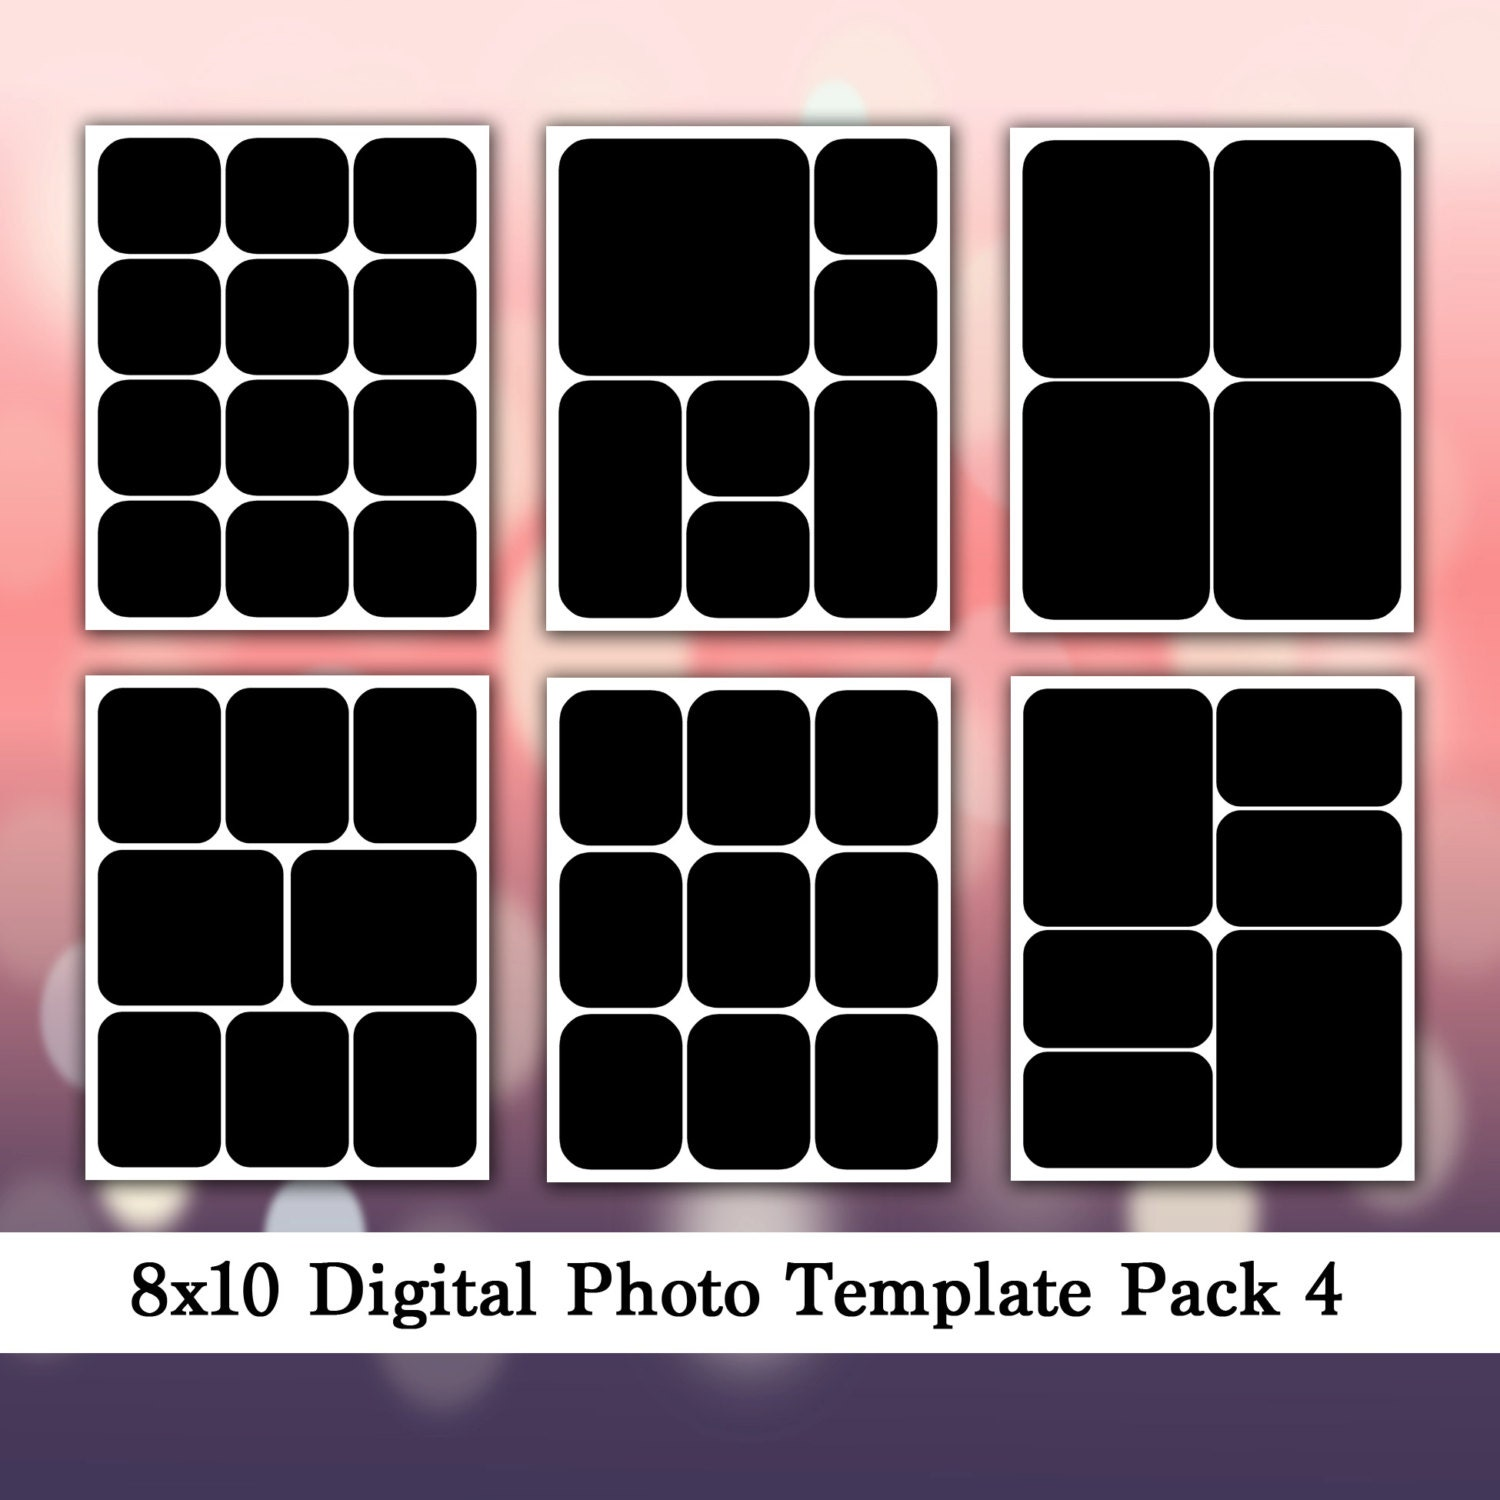 8x10 digital photo template pack photo collage storyboard. Black Bedroom Furniture Sets. Home Design Ideas